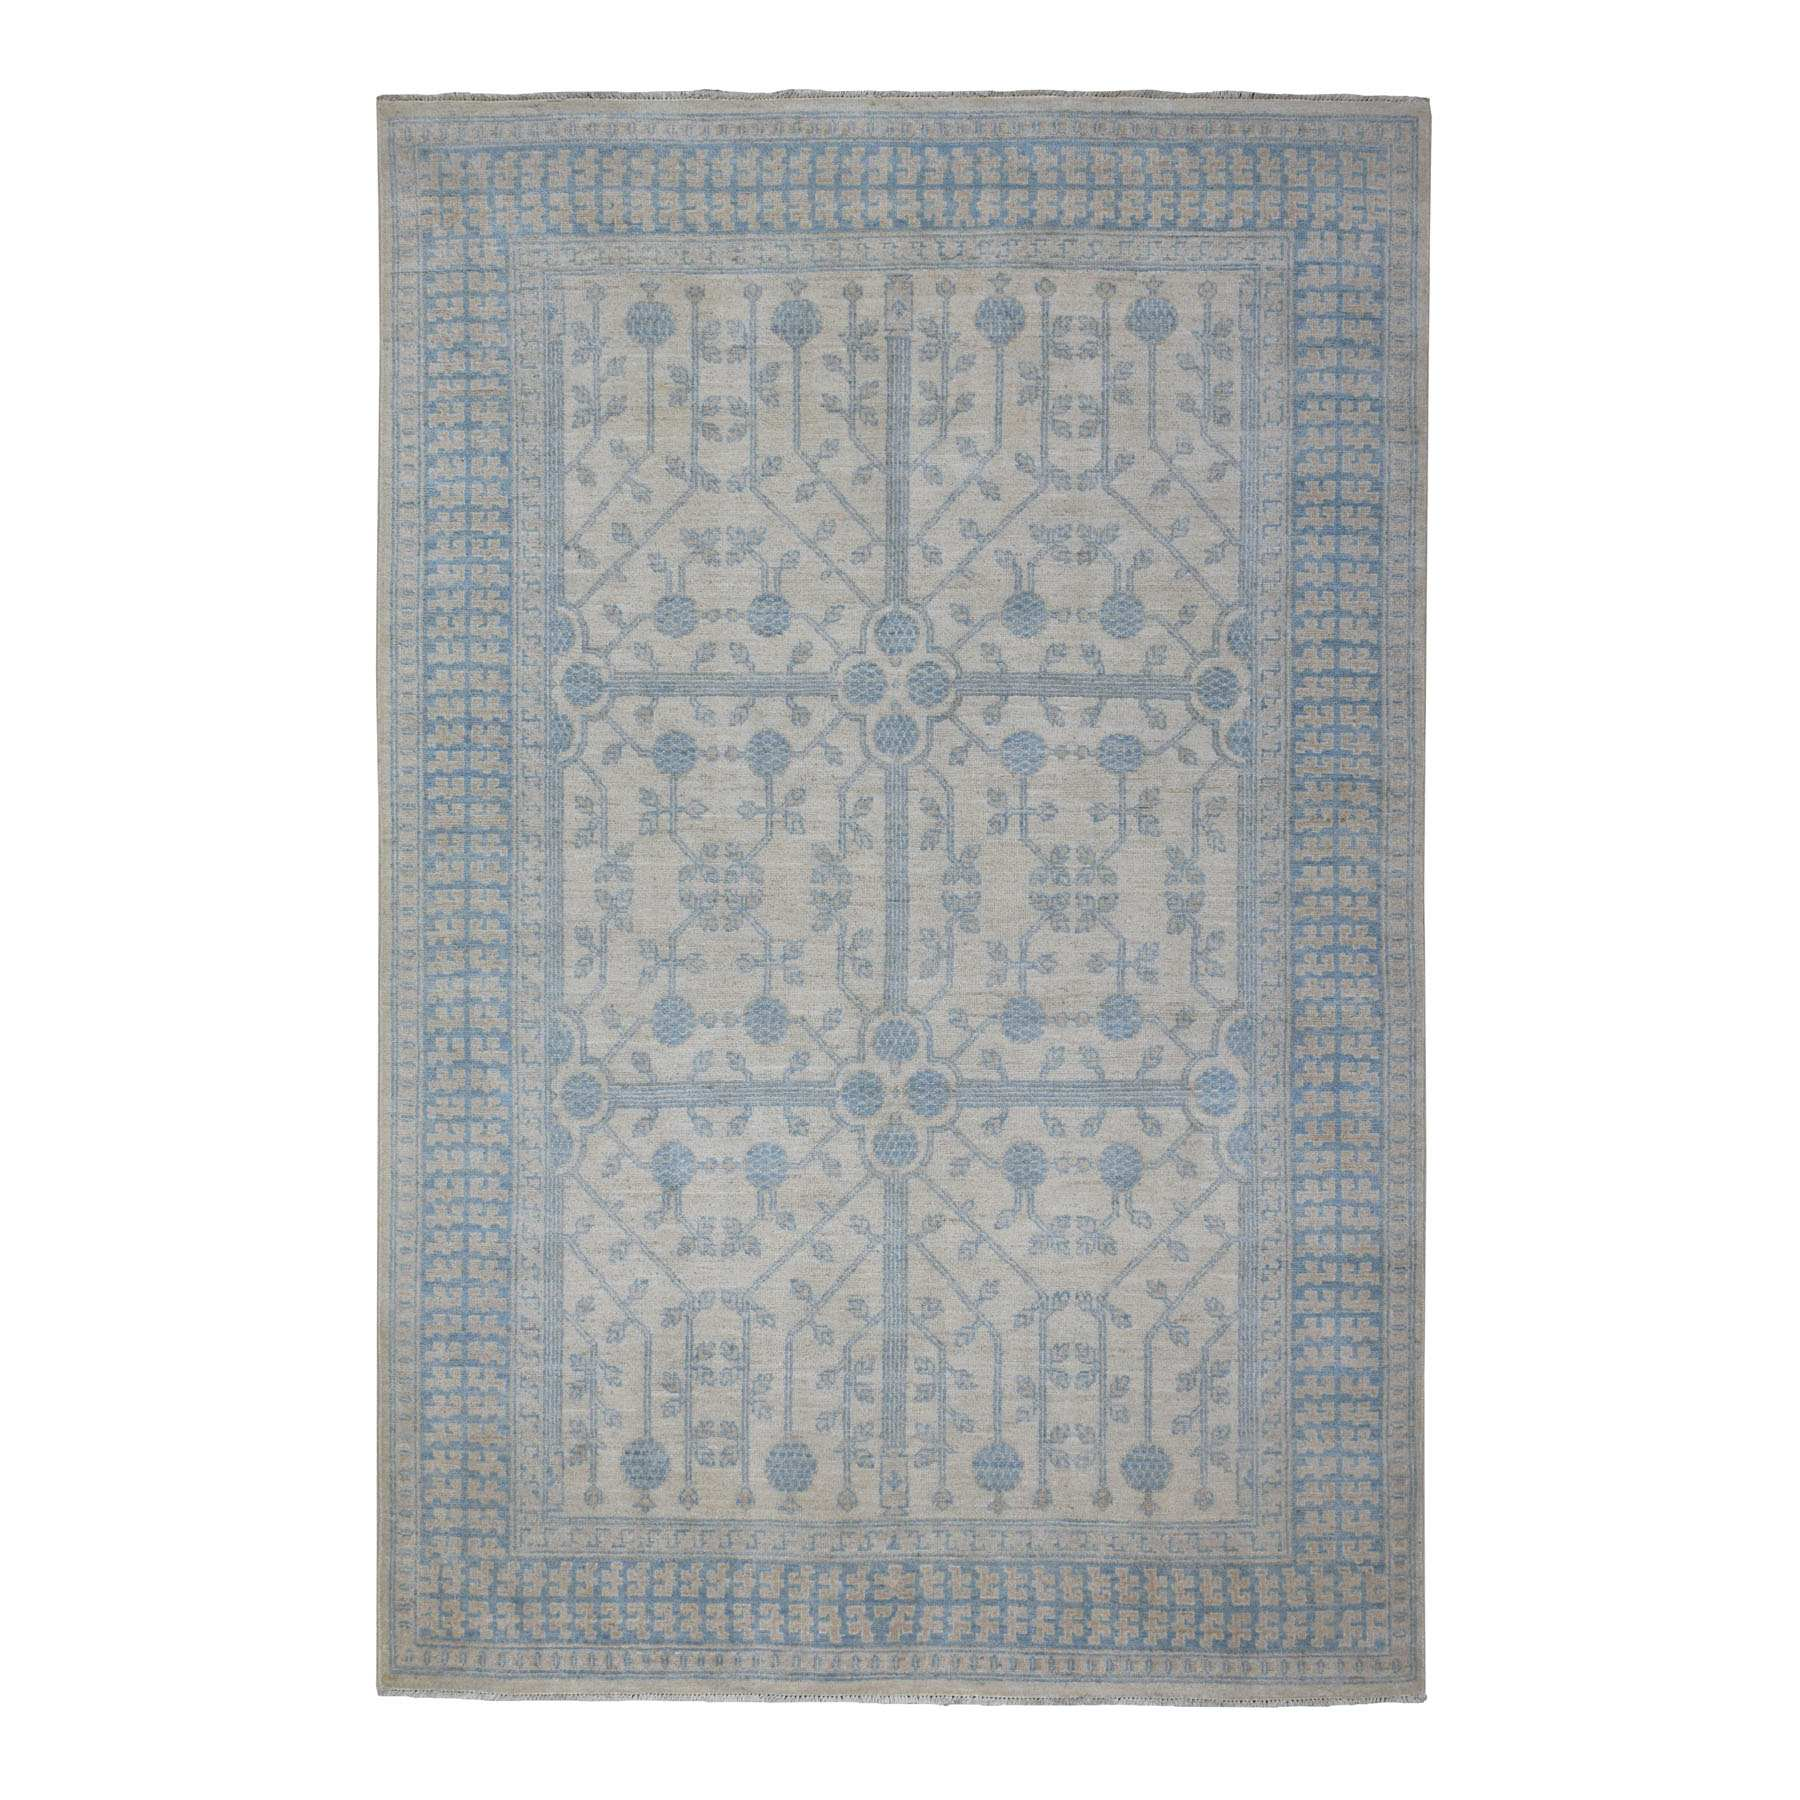 Oushak-And-Peshawar-Hand-Knotted-Rug-271455